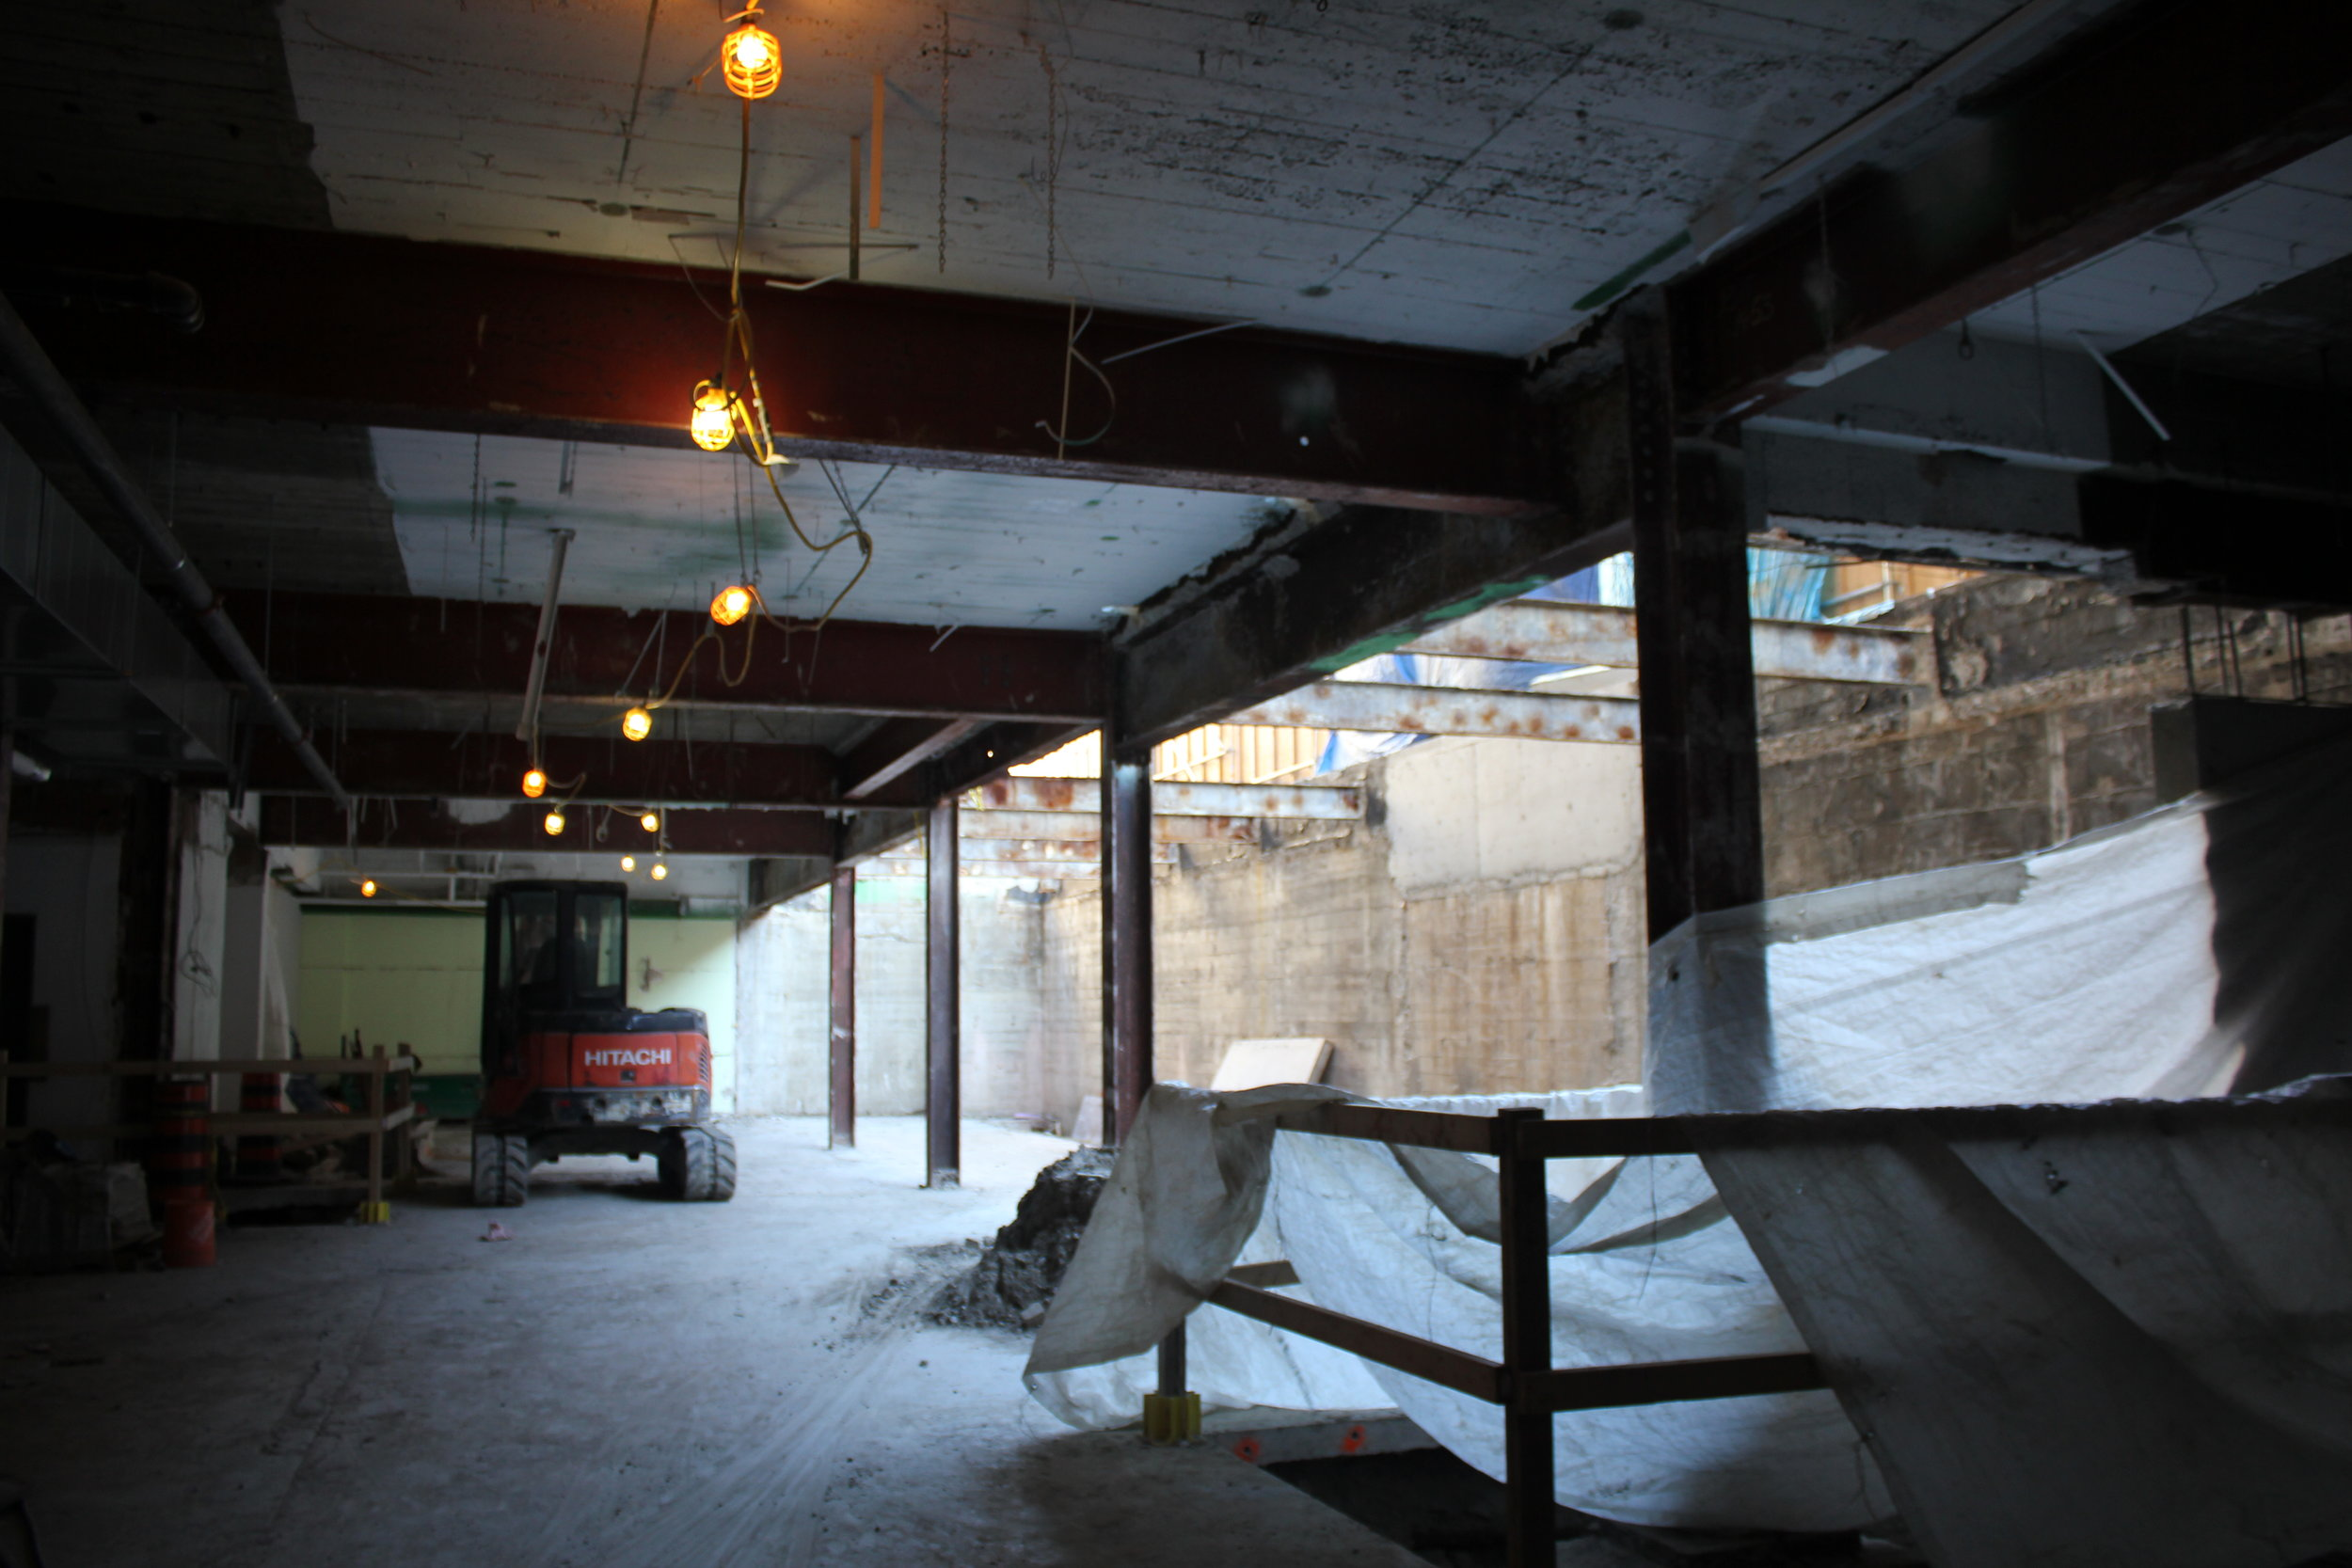 In Fall of 2017, visitors to The York School will enter the reception area from the south end of 1320 Yonge Street, immediately entering a large common area with a performance stage and Learning Commons. The floor has been prepared and the extensive electrical wiring and cabling is being completed to begin the ceiling and wall construction.